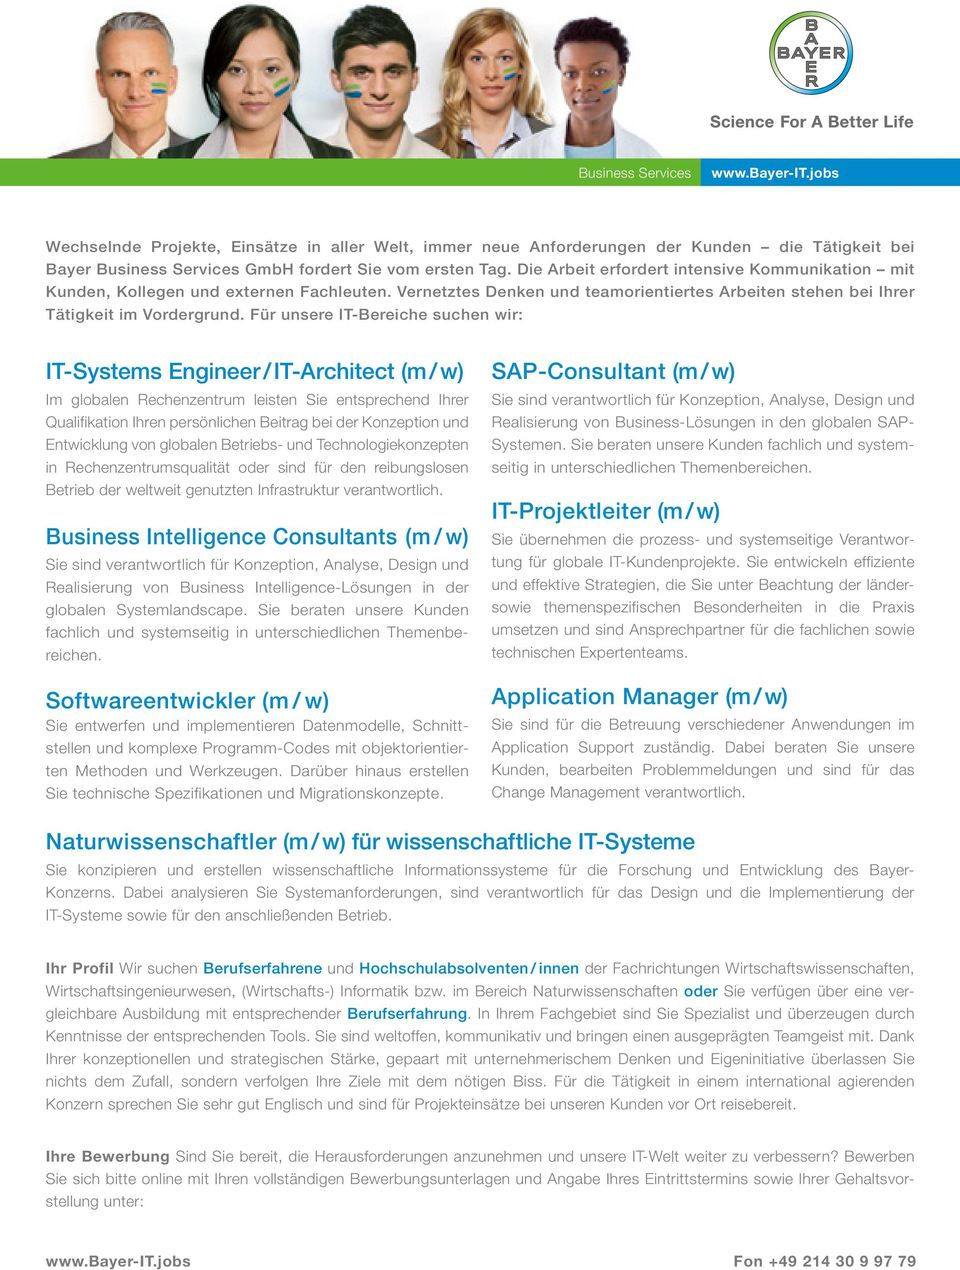 Für unsere IT-Bereiche suchen wir: IT-Systems Engineer / IT-Architect (m / w) SAP-Consultant (m / w) Im globalen Rechenzentrum leisten Sie entsprechend Ihrer Qualifikation Ihren persönlichen Beitrag